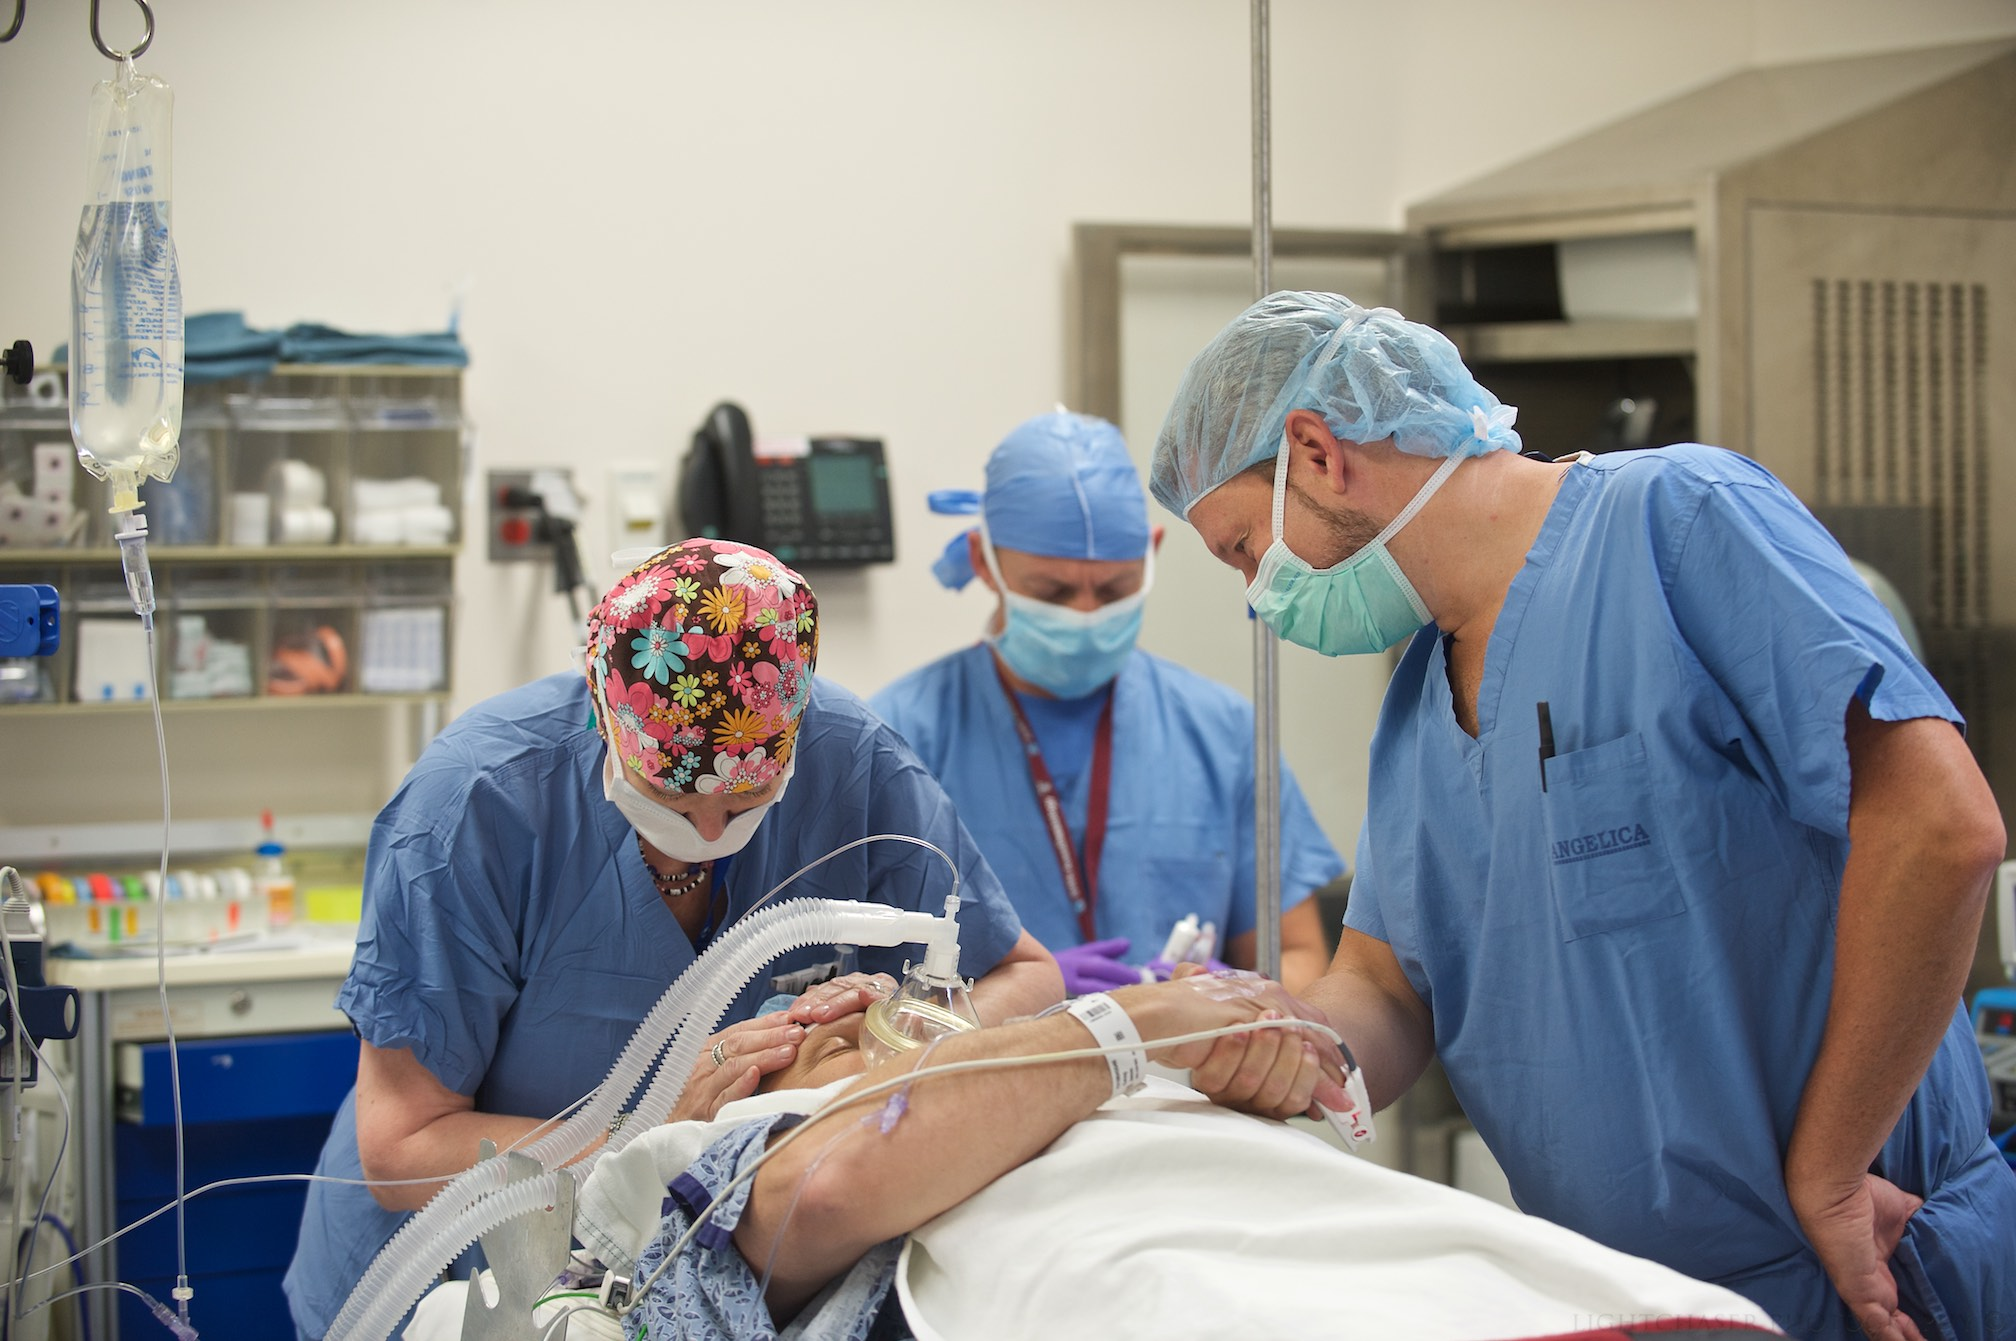 BRIGHAM AND WOMEN'S FAULKNER HOSPITAL PLASTIC SURGEON MATTHEW CARTY OPERATES ON PATIENT JIM EWING TUESDAY JULY 20 2016